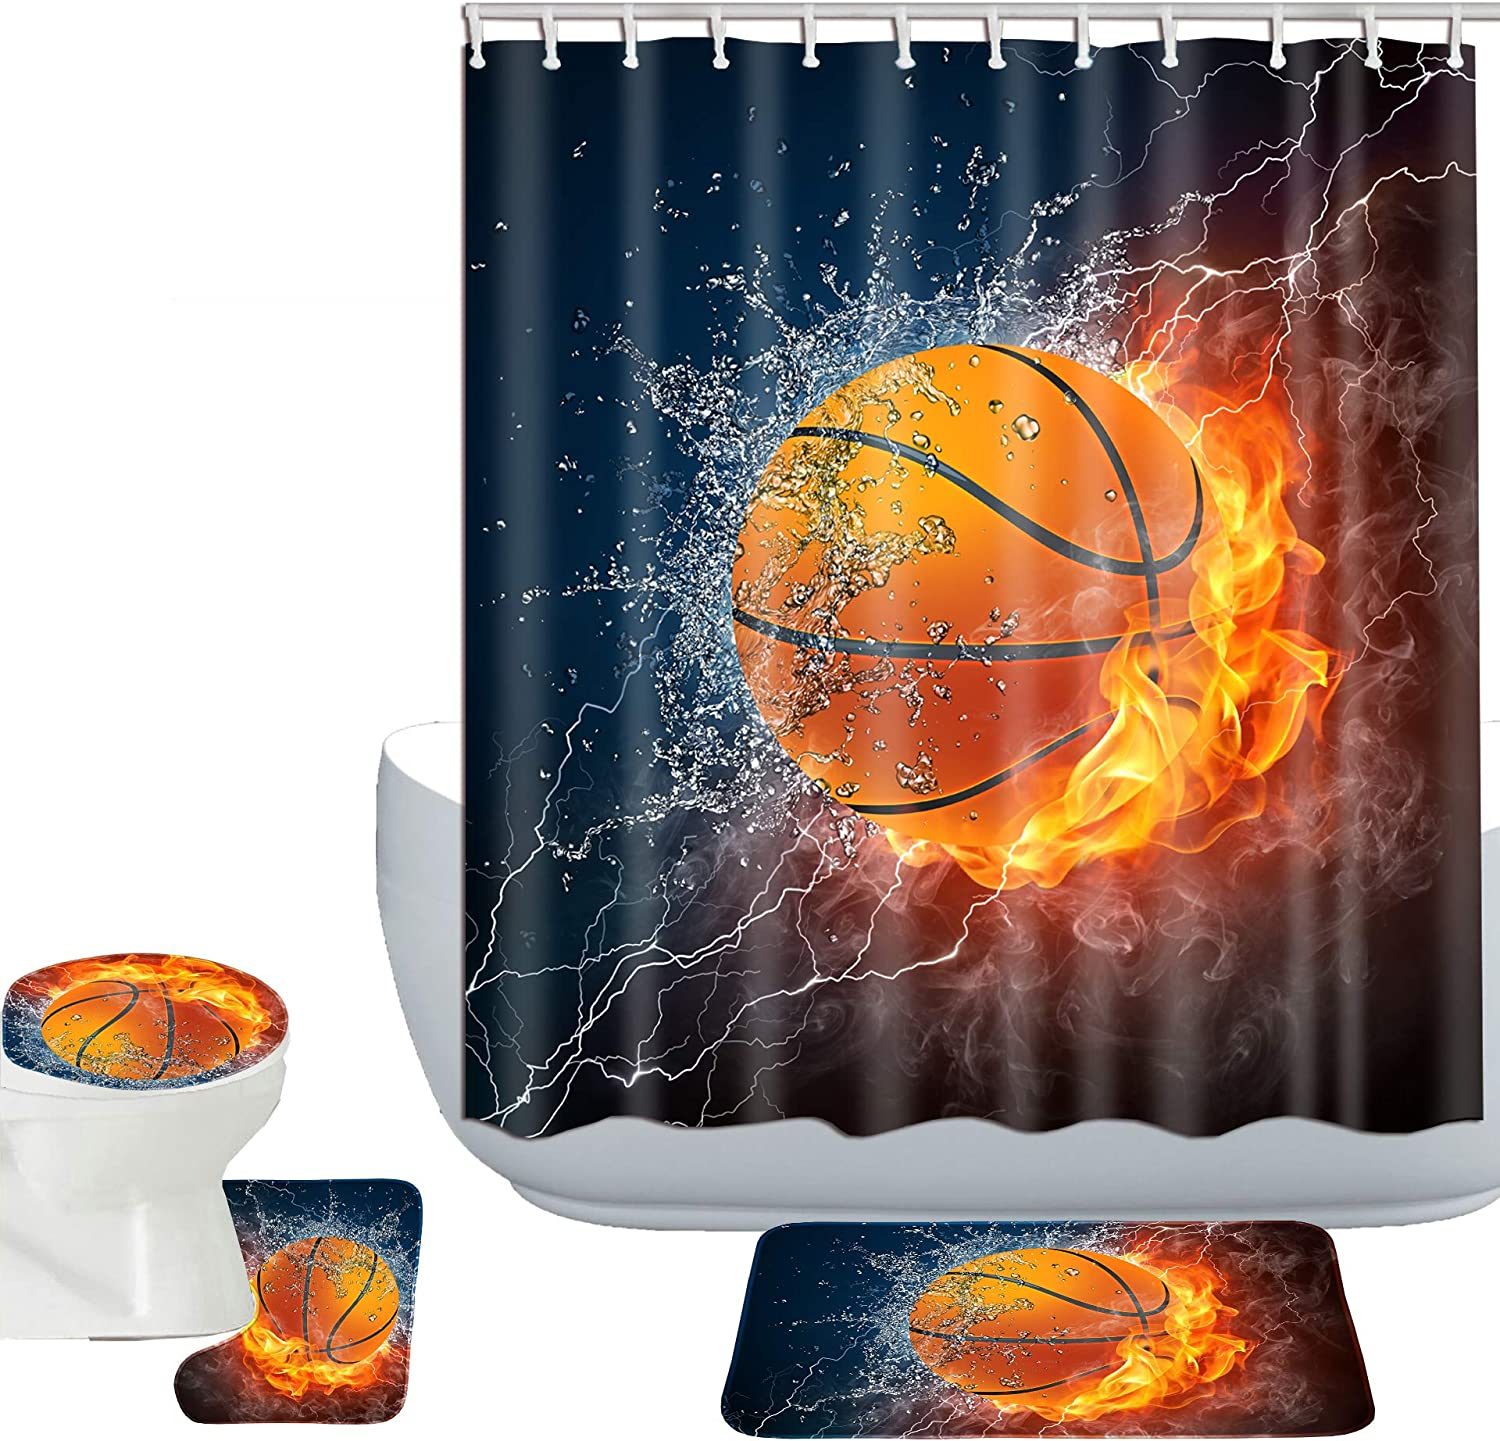 Branded High order goods Amagical Basketball on Fire and Water in Flame Design Enveloped